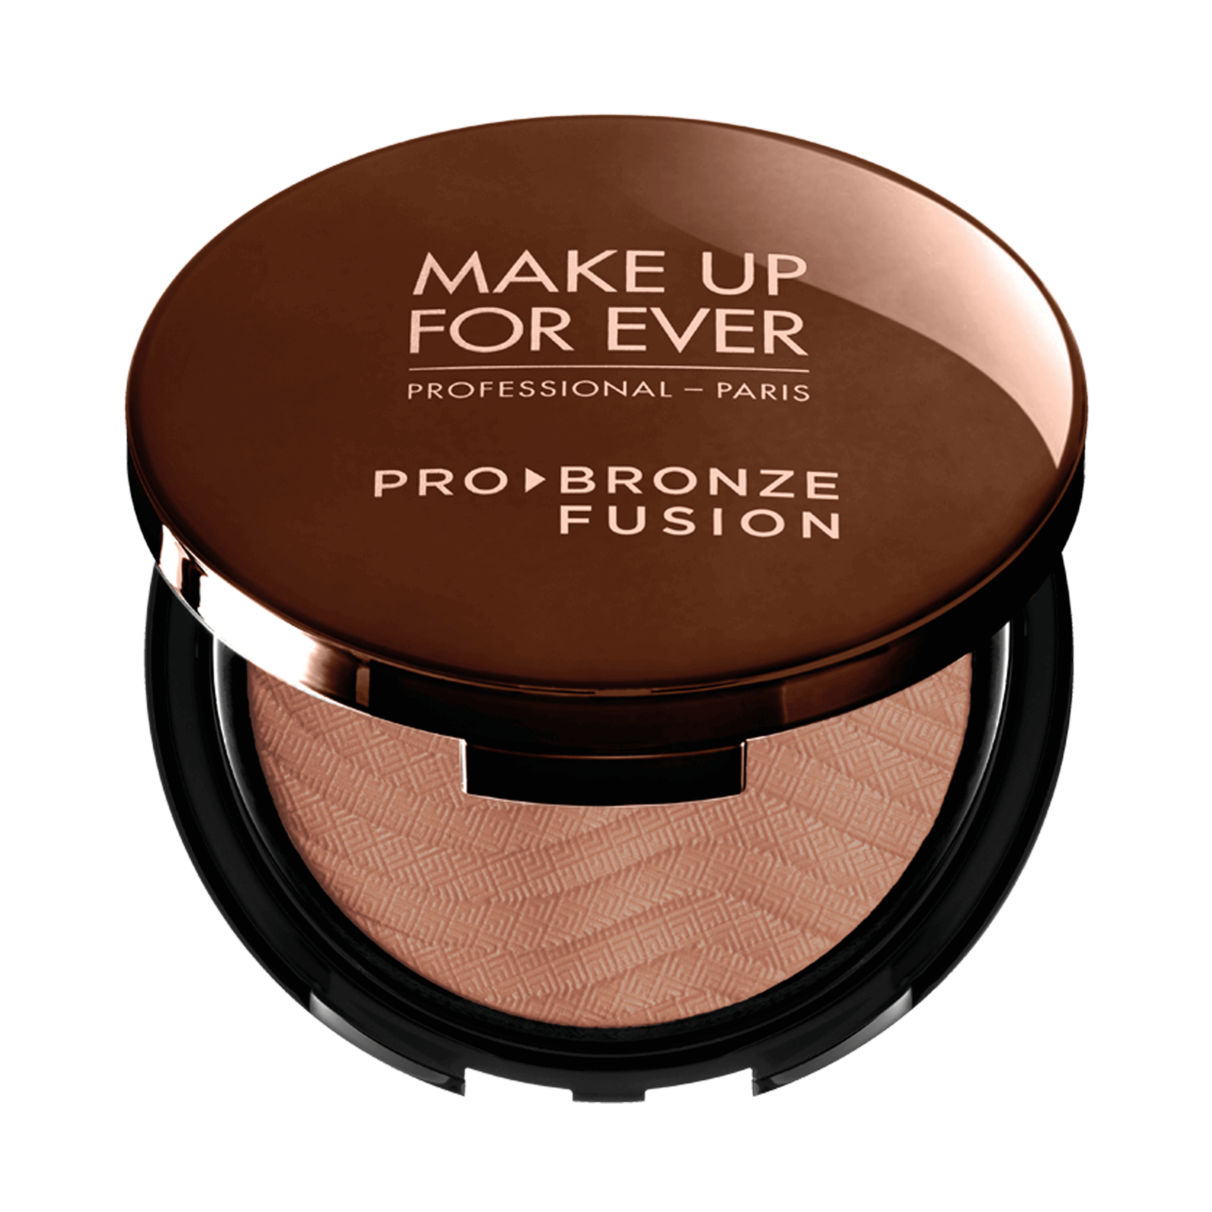 MAKE UP FOR EVER Pro Bronze Fusion Always Sun-Kissed, Without a Trace